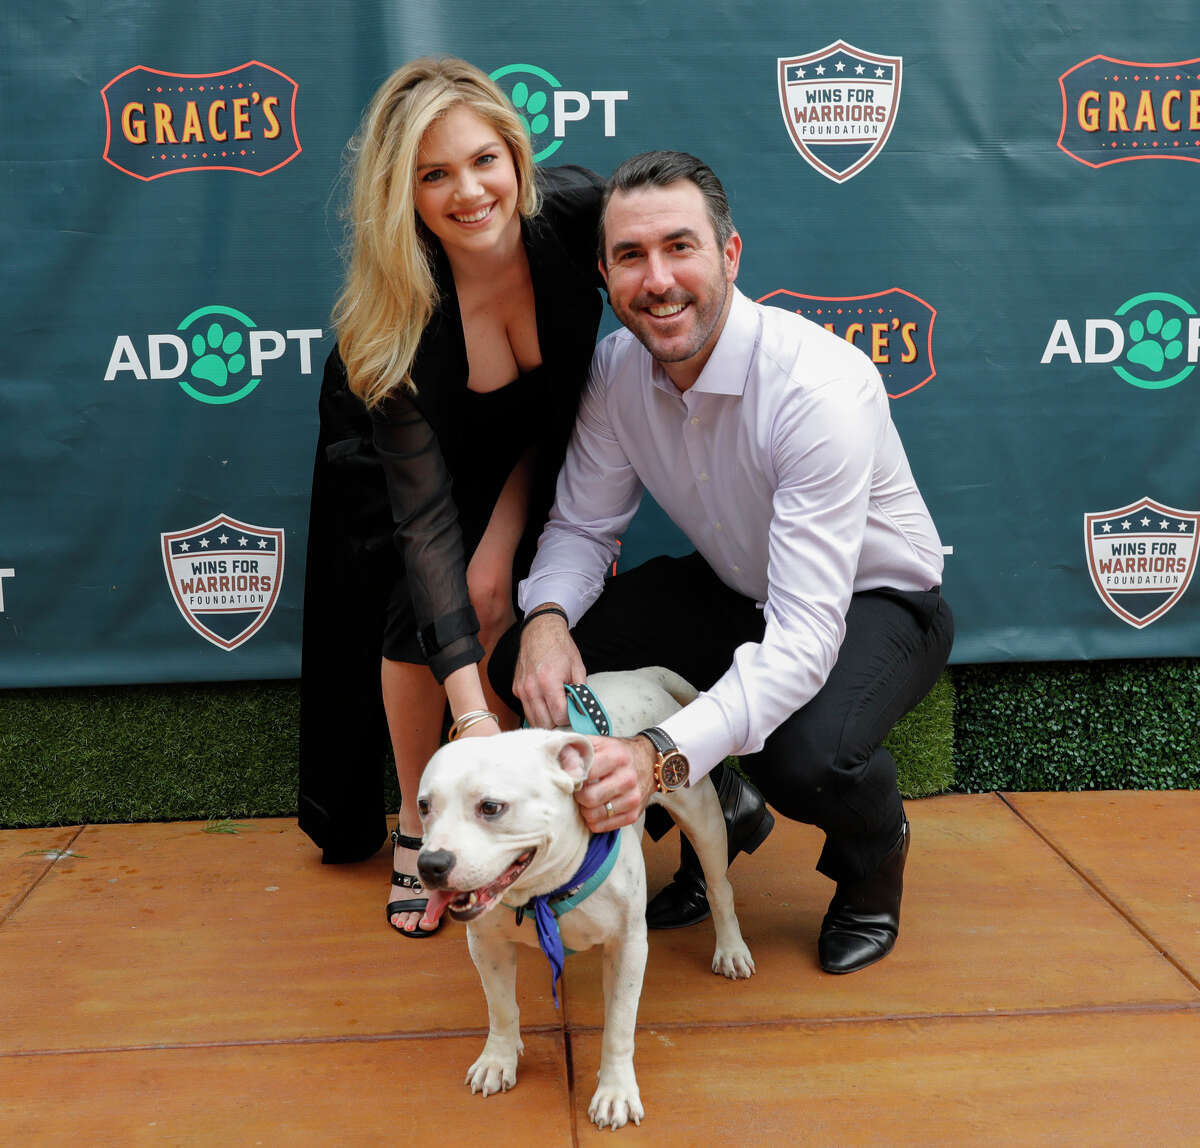 Supermodel Kate Upton and Houston Astros pitcher Justin Verlander host reception for Grand Slam Adoption Event and Wins For Warriors Foundation to raise funds for adoptable dogs to become service animals for military veterans at Grace's On Kirby on September 3, 2018 in Houston, Texas. (Photo by Bob Levey/Getty Images for Wins for Warriors Foundation)